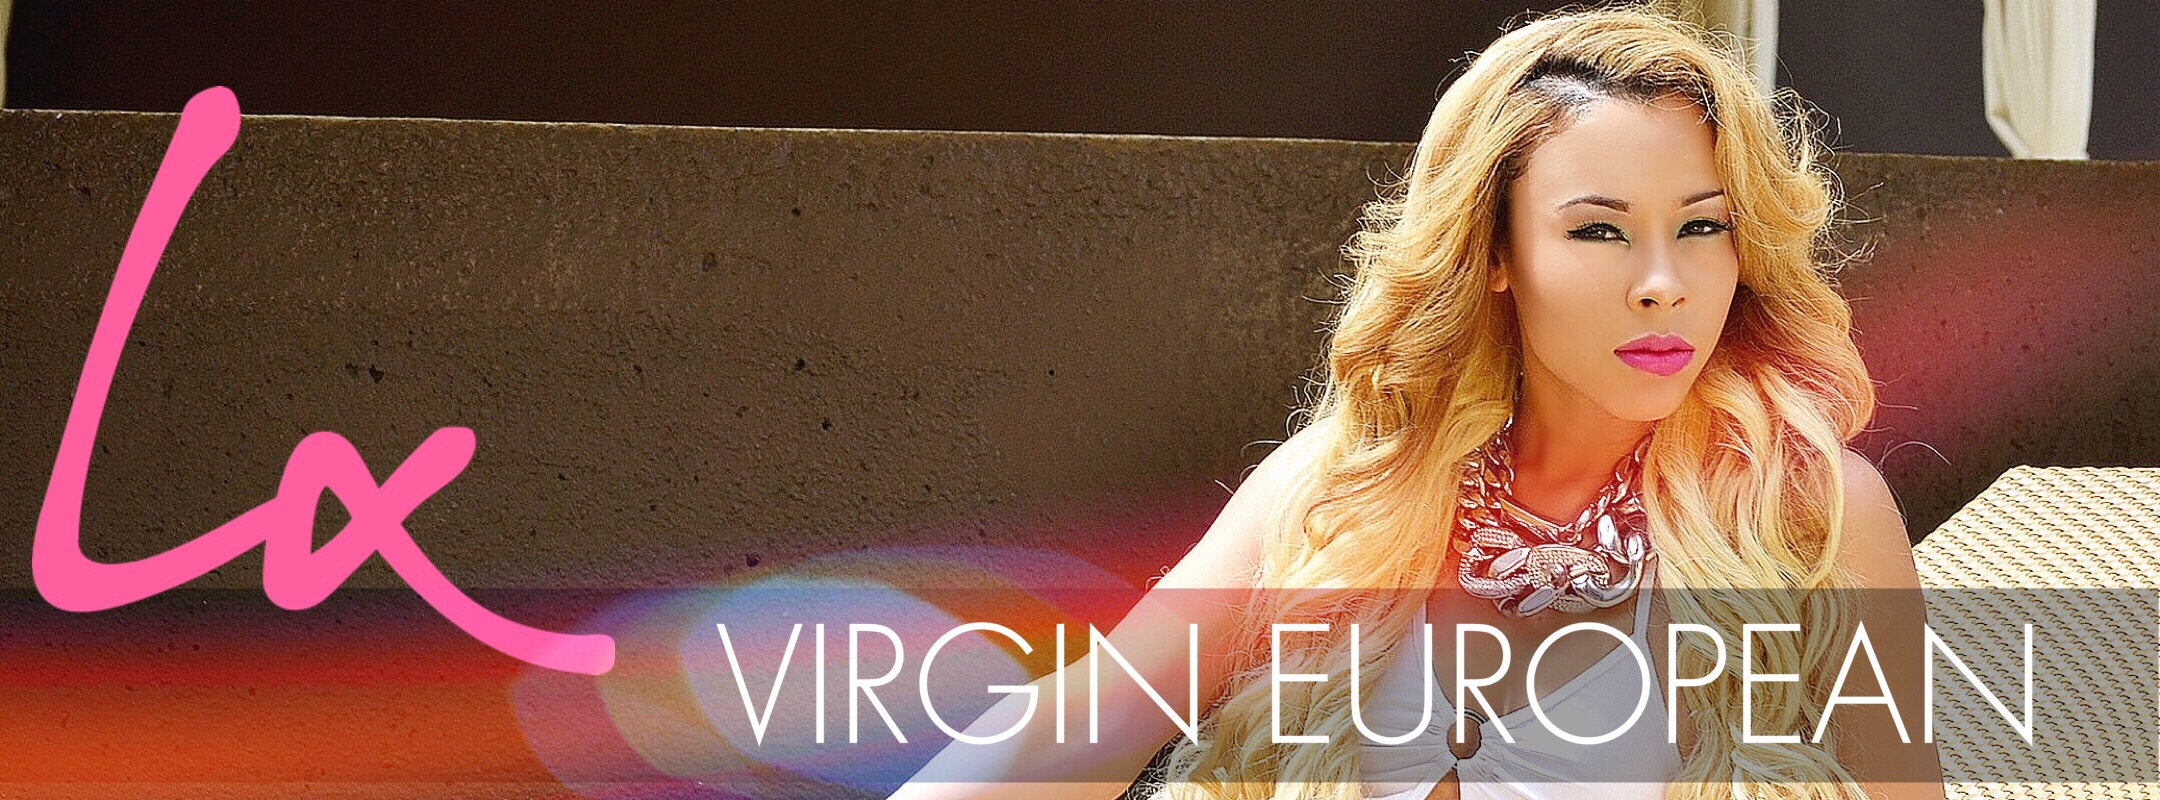 Virgin European Hair